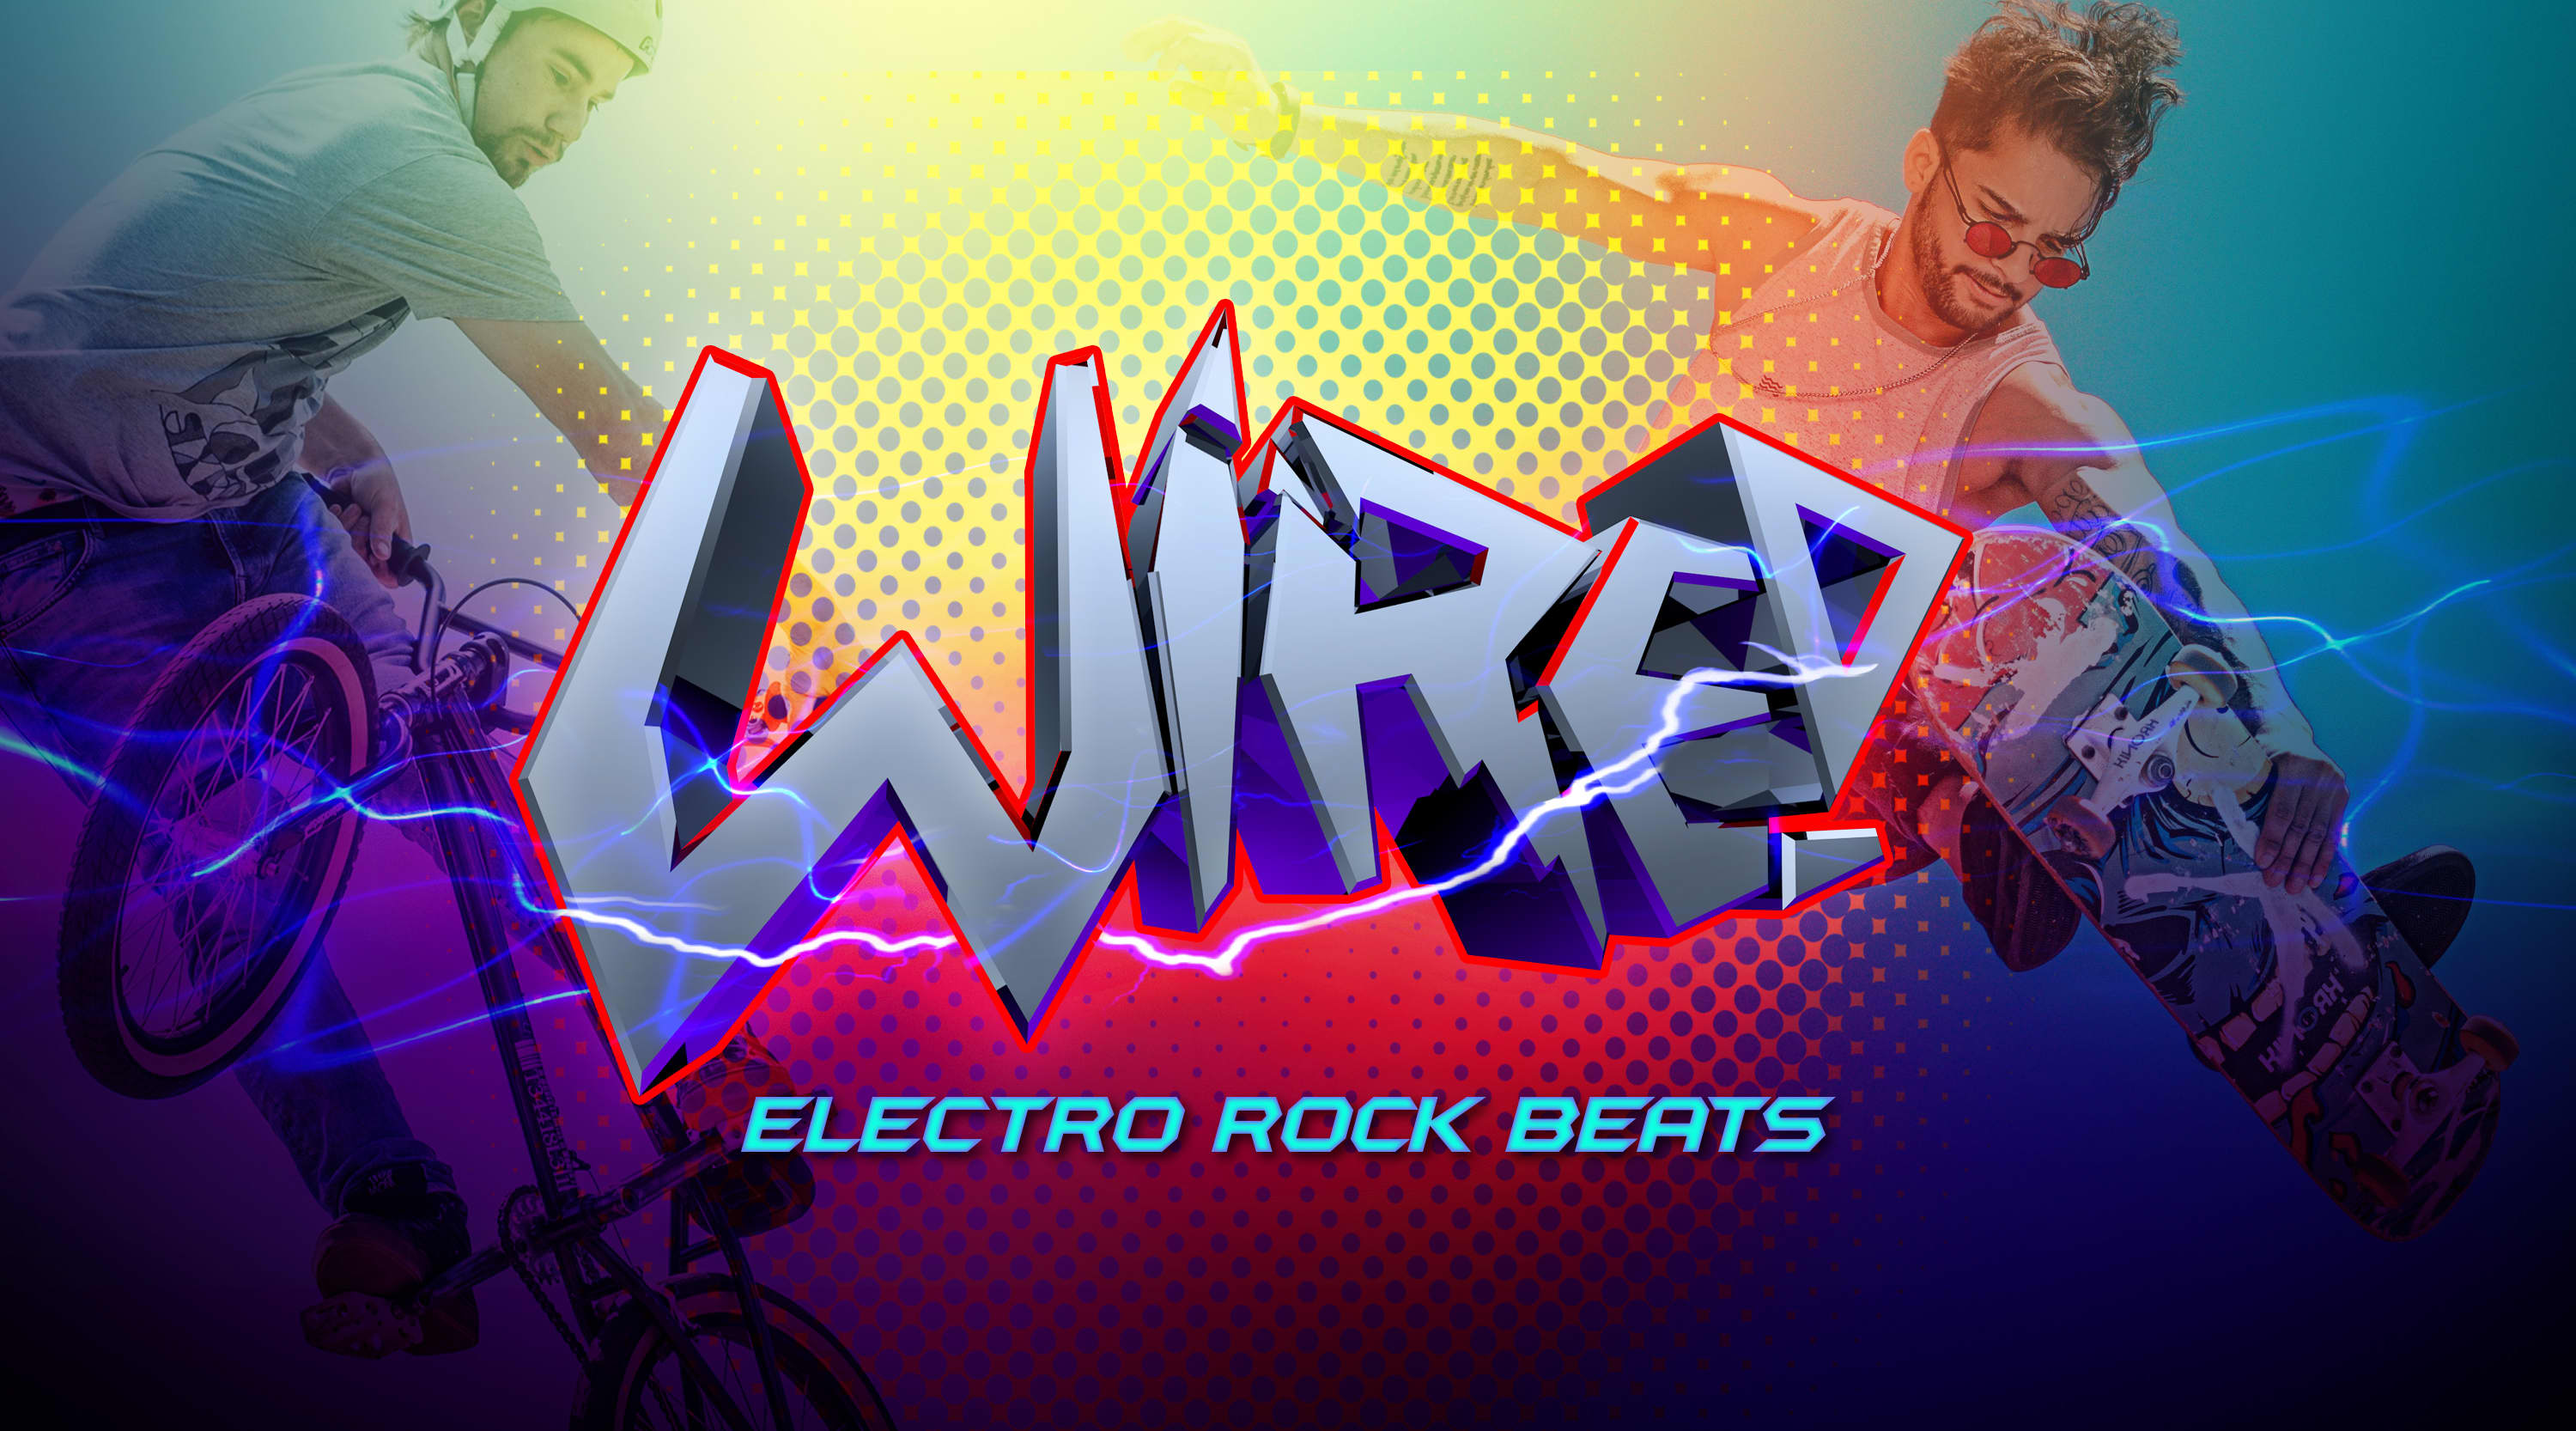 Wired Electro Rock Beats